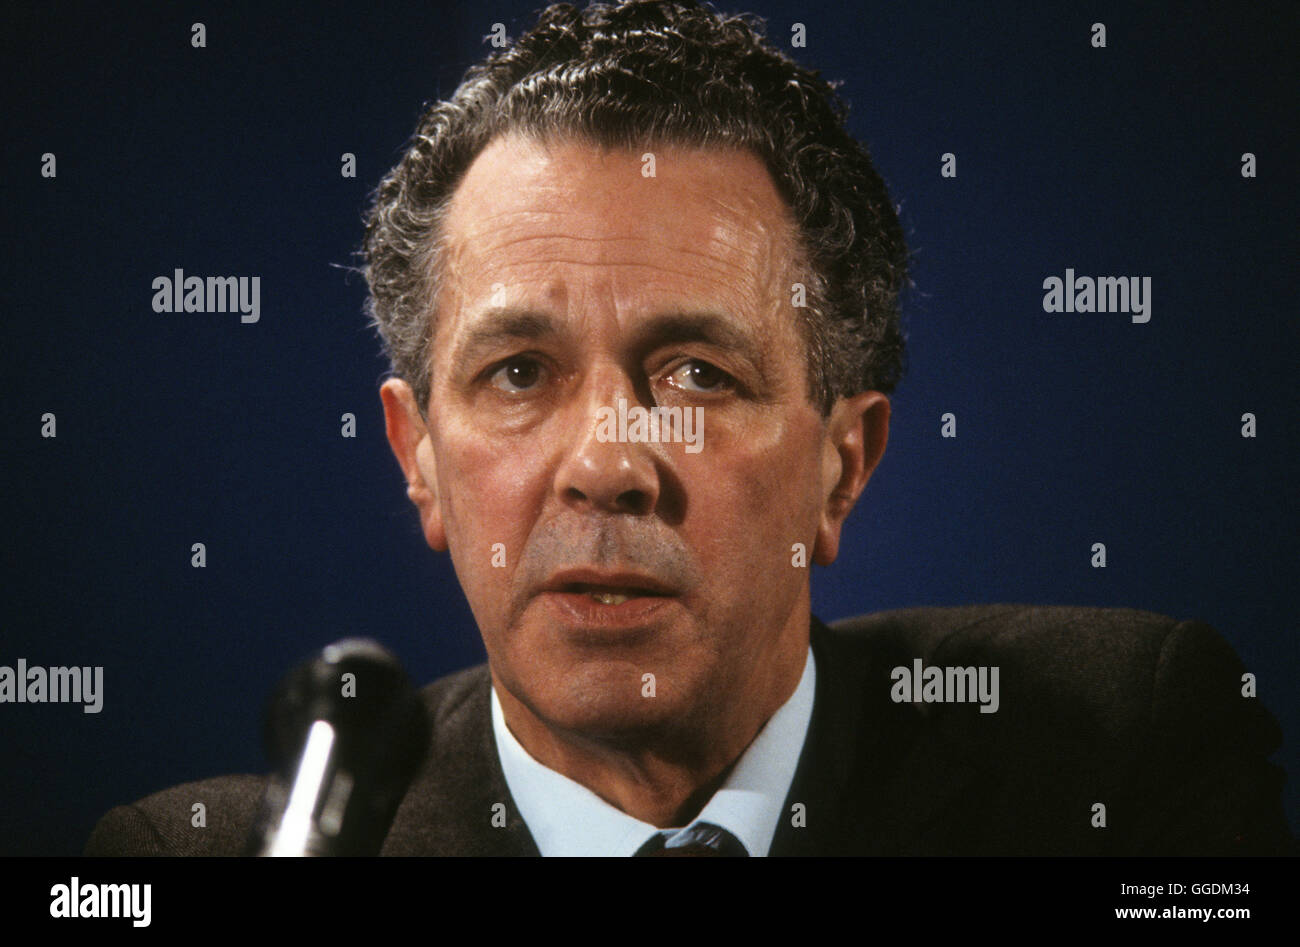 Sir Keith Joseph 1980 Conservative Party political conference London UK HOMER SYKES - Stock Image